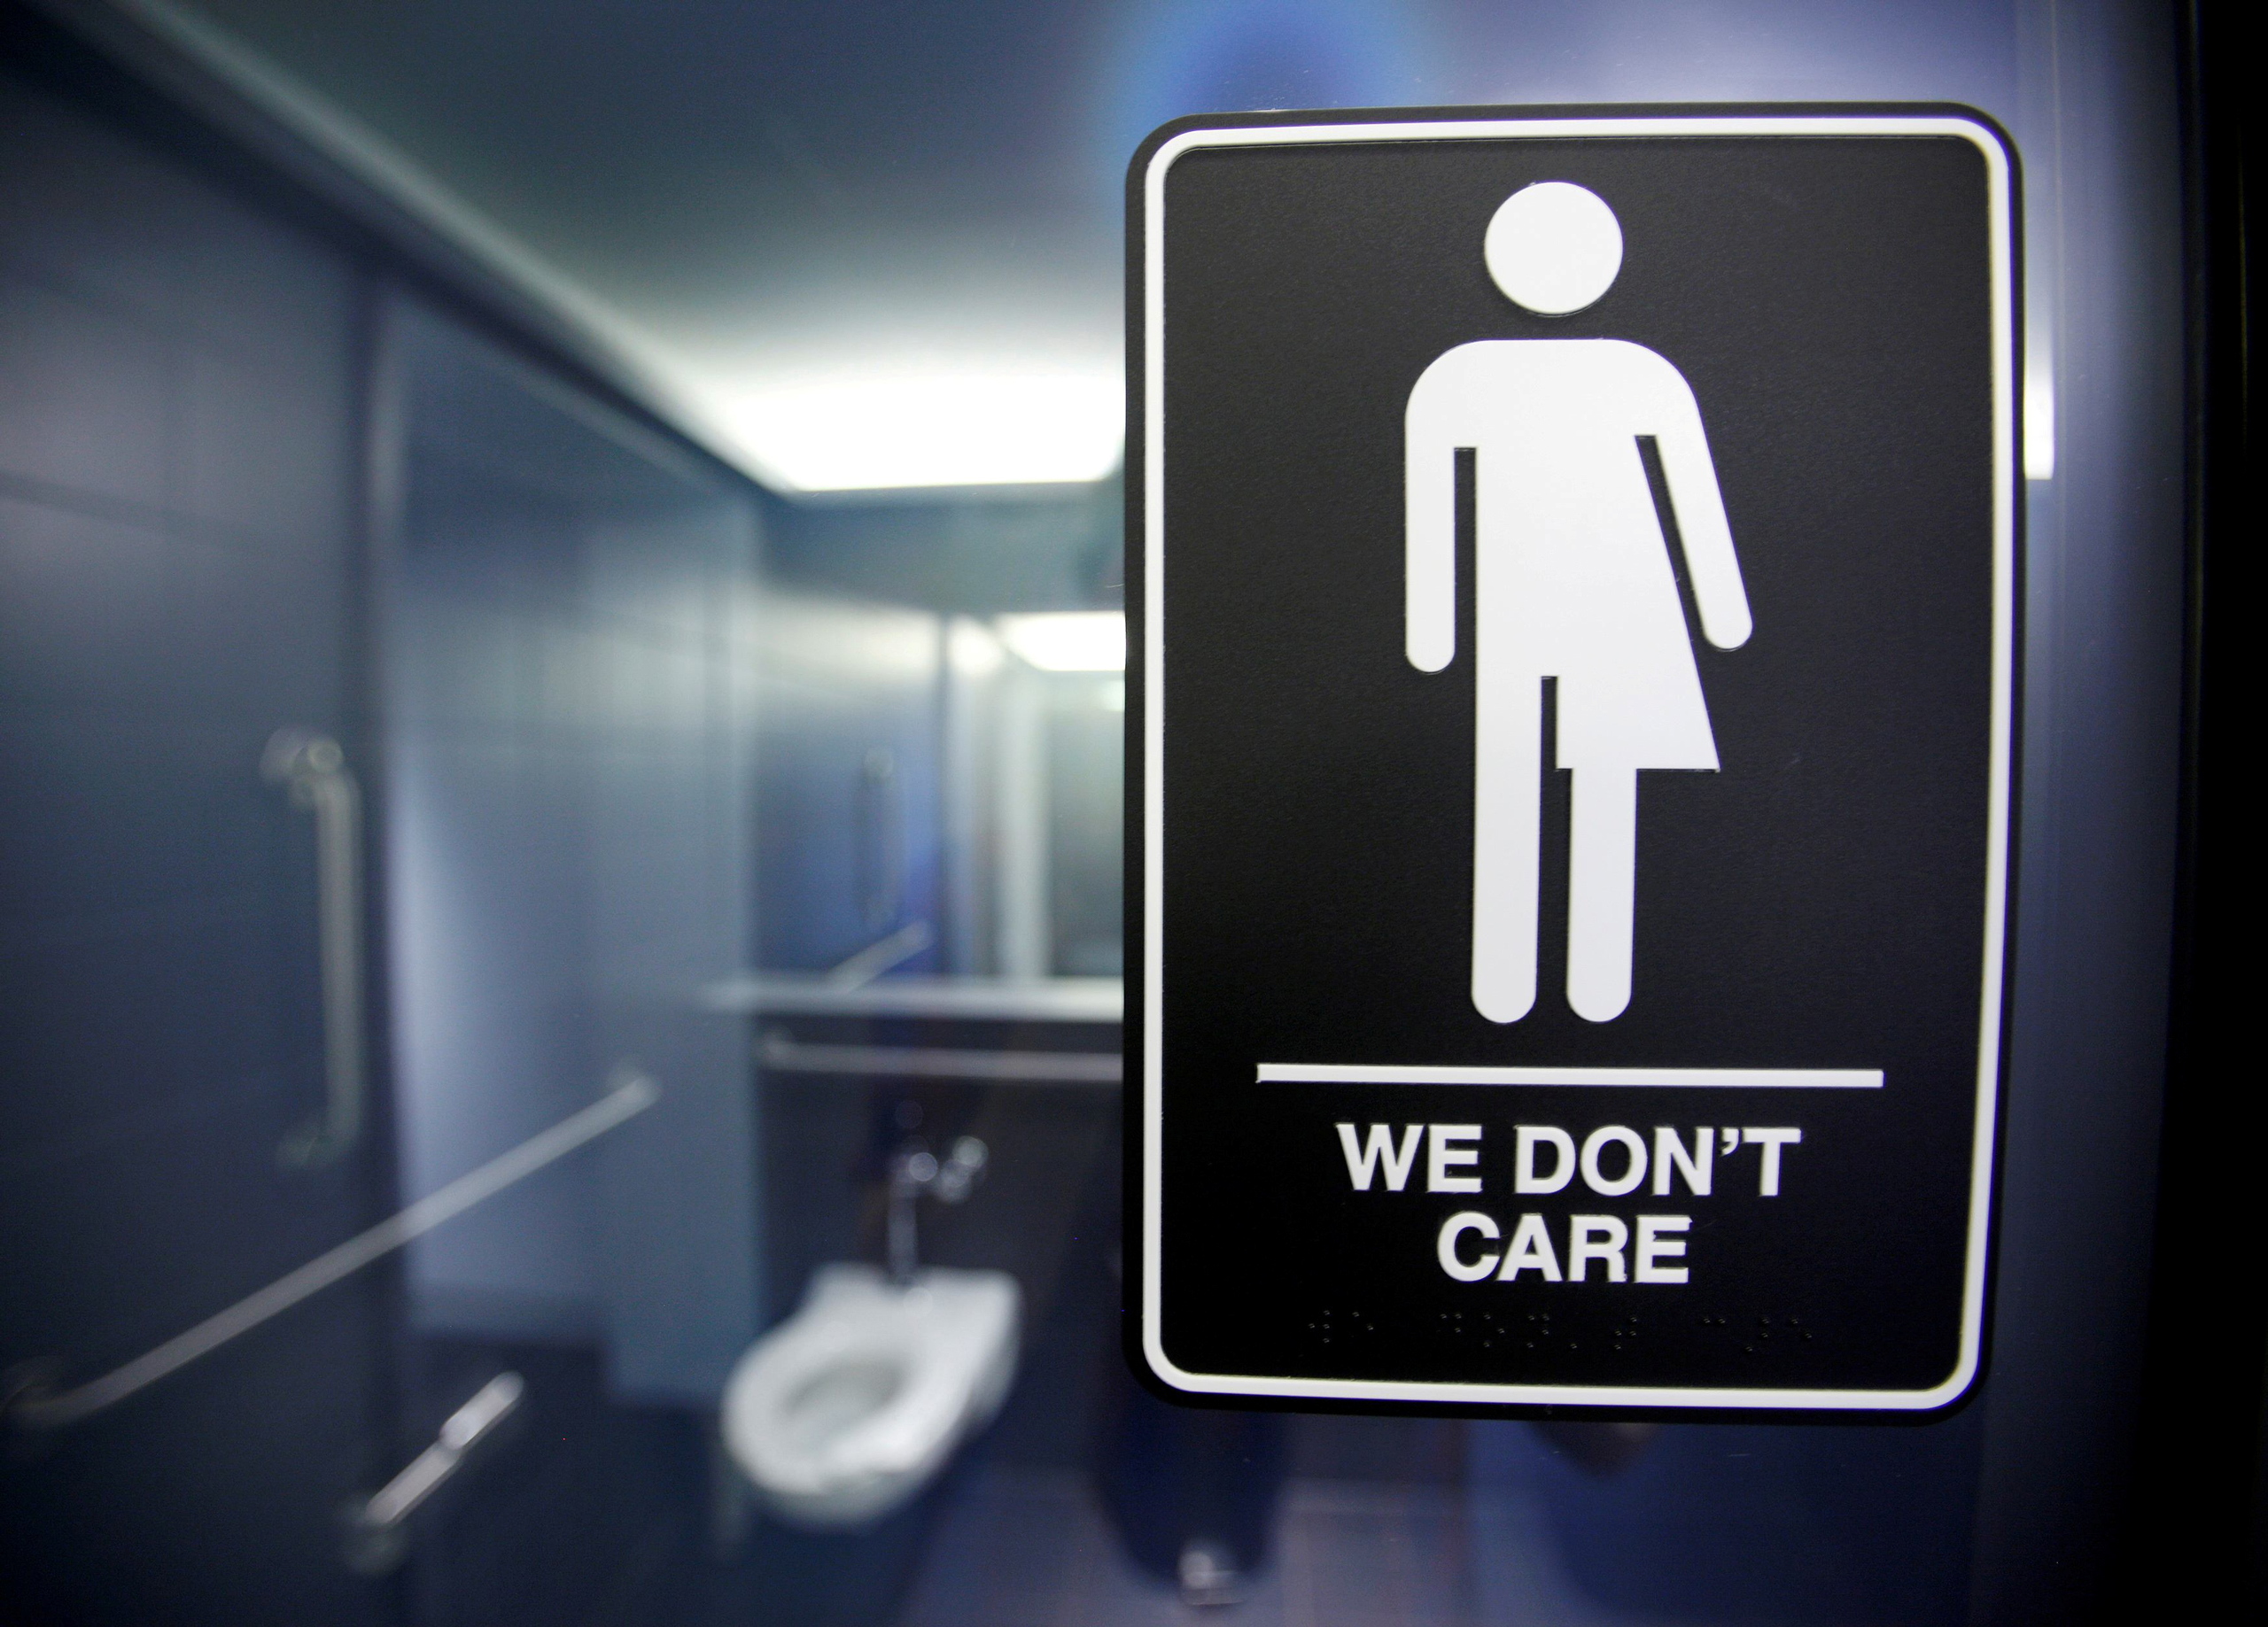 A sign protesting a recent North Carolina law restricting transgender bathroom access is seen in the bathroom stalls at the 21C Museum Hotel in Durham, N.C on May 3, 2016.